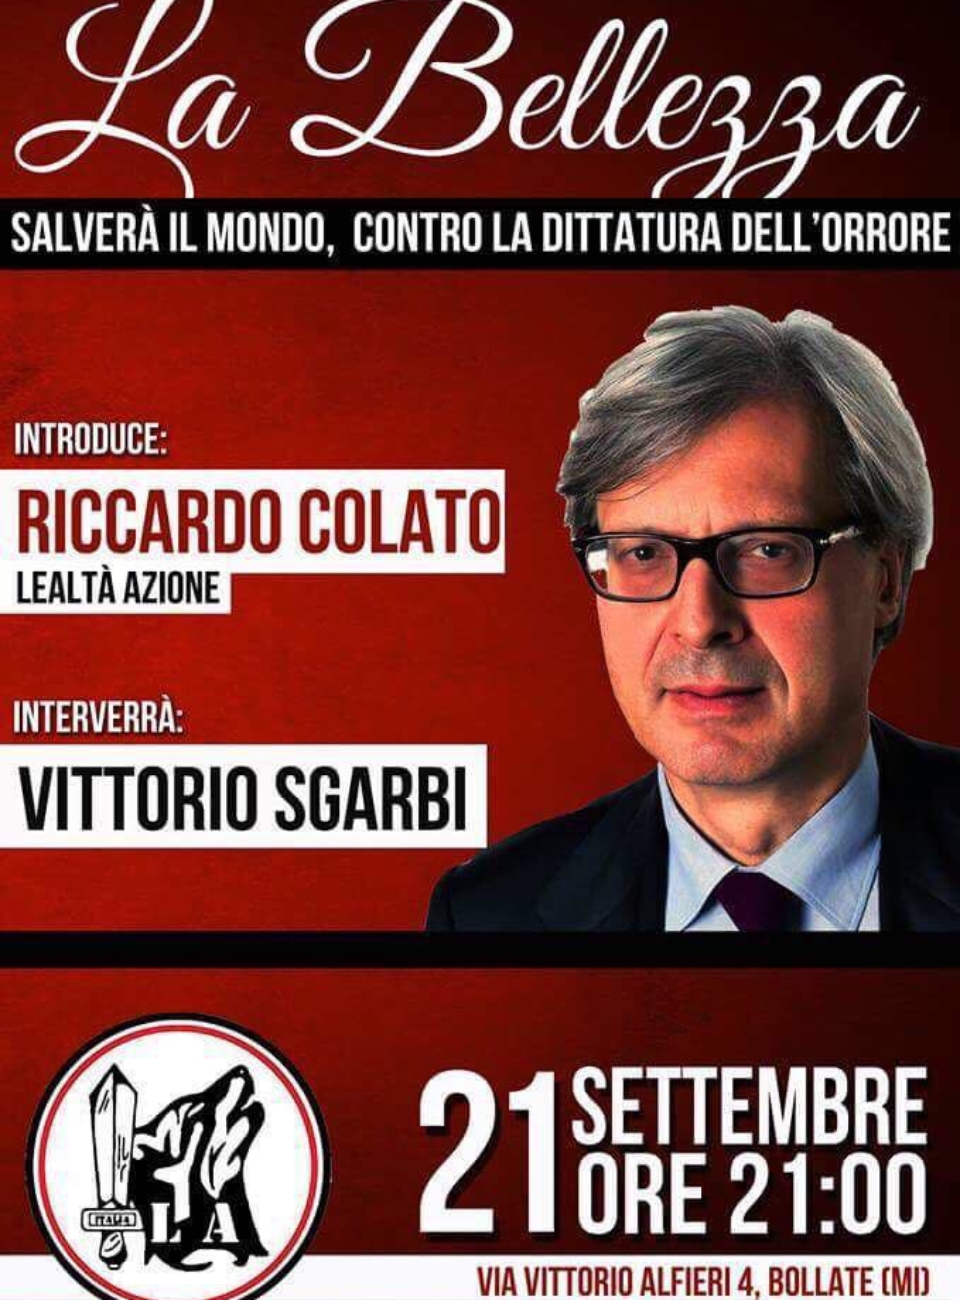 sgarbi_bellezza